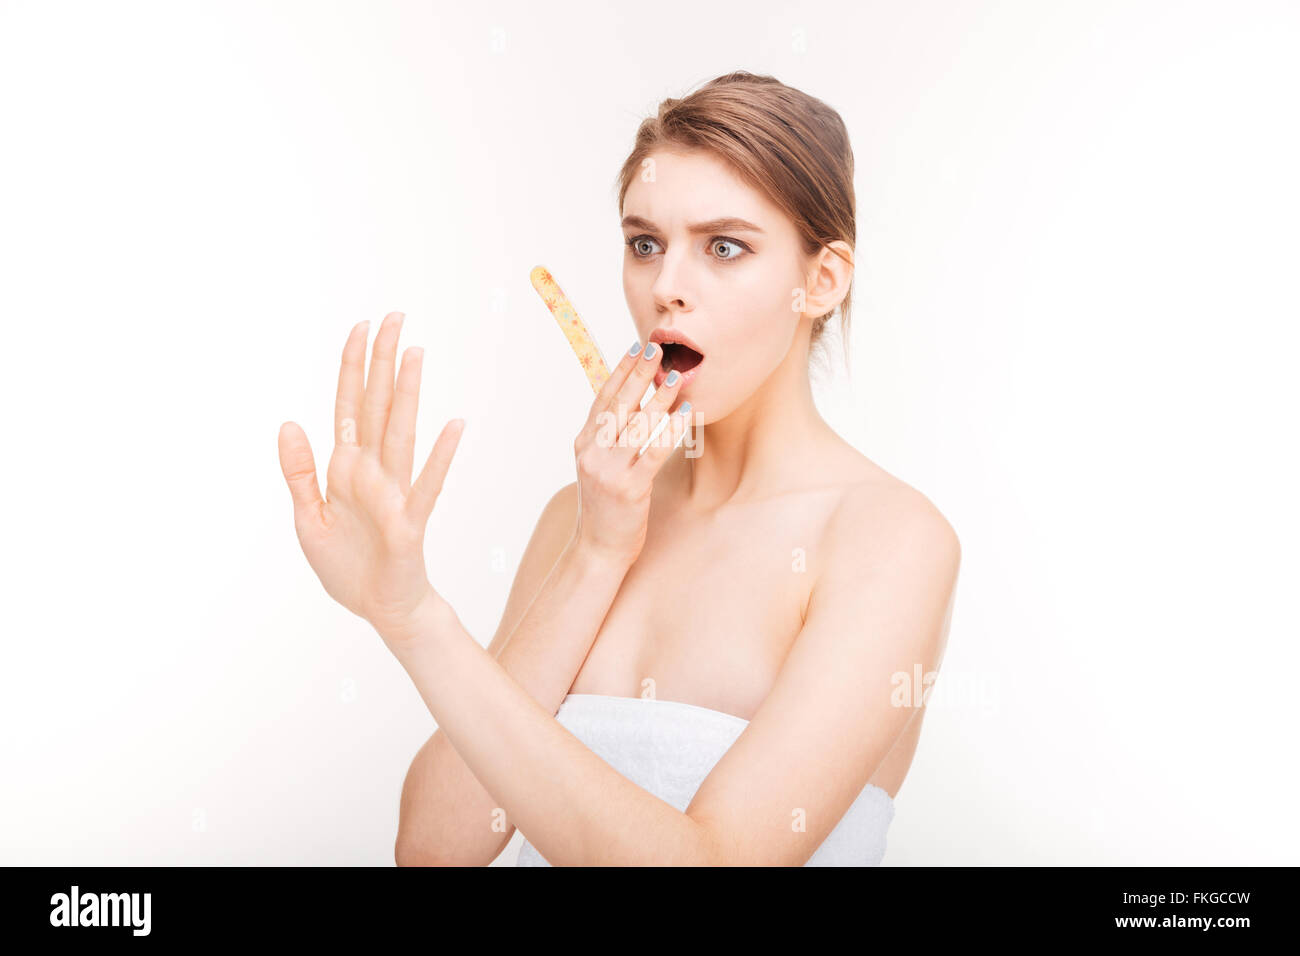 Beauty portrait of shocked young woman with emery board looking at her nails over white background - Stock Image